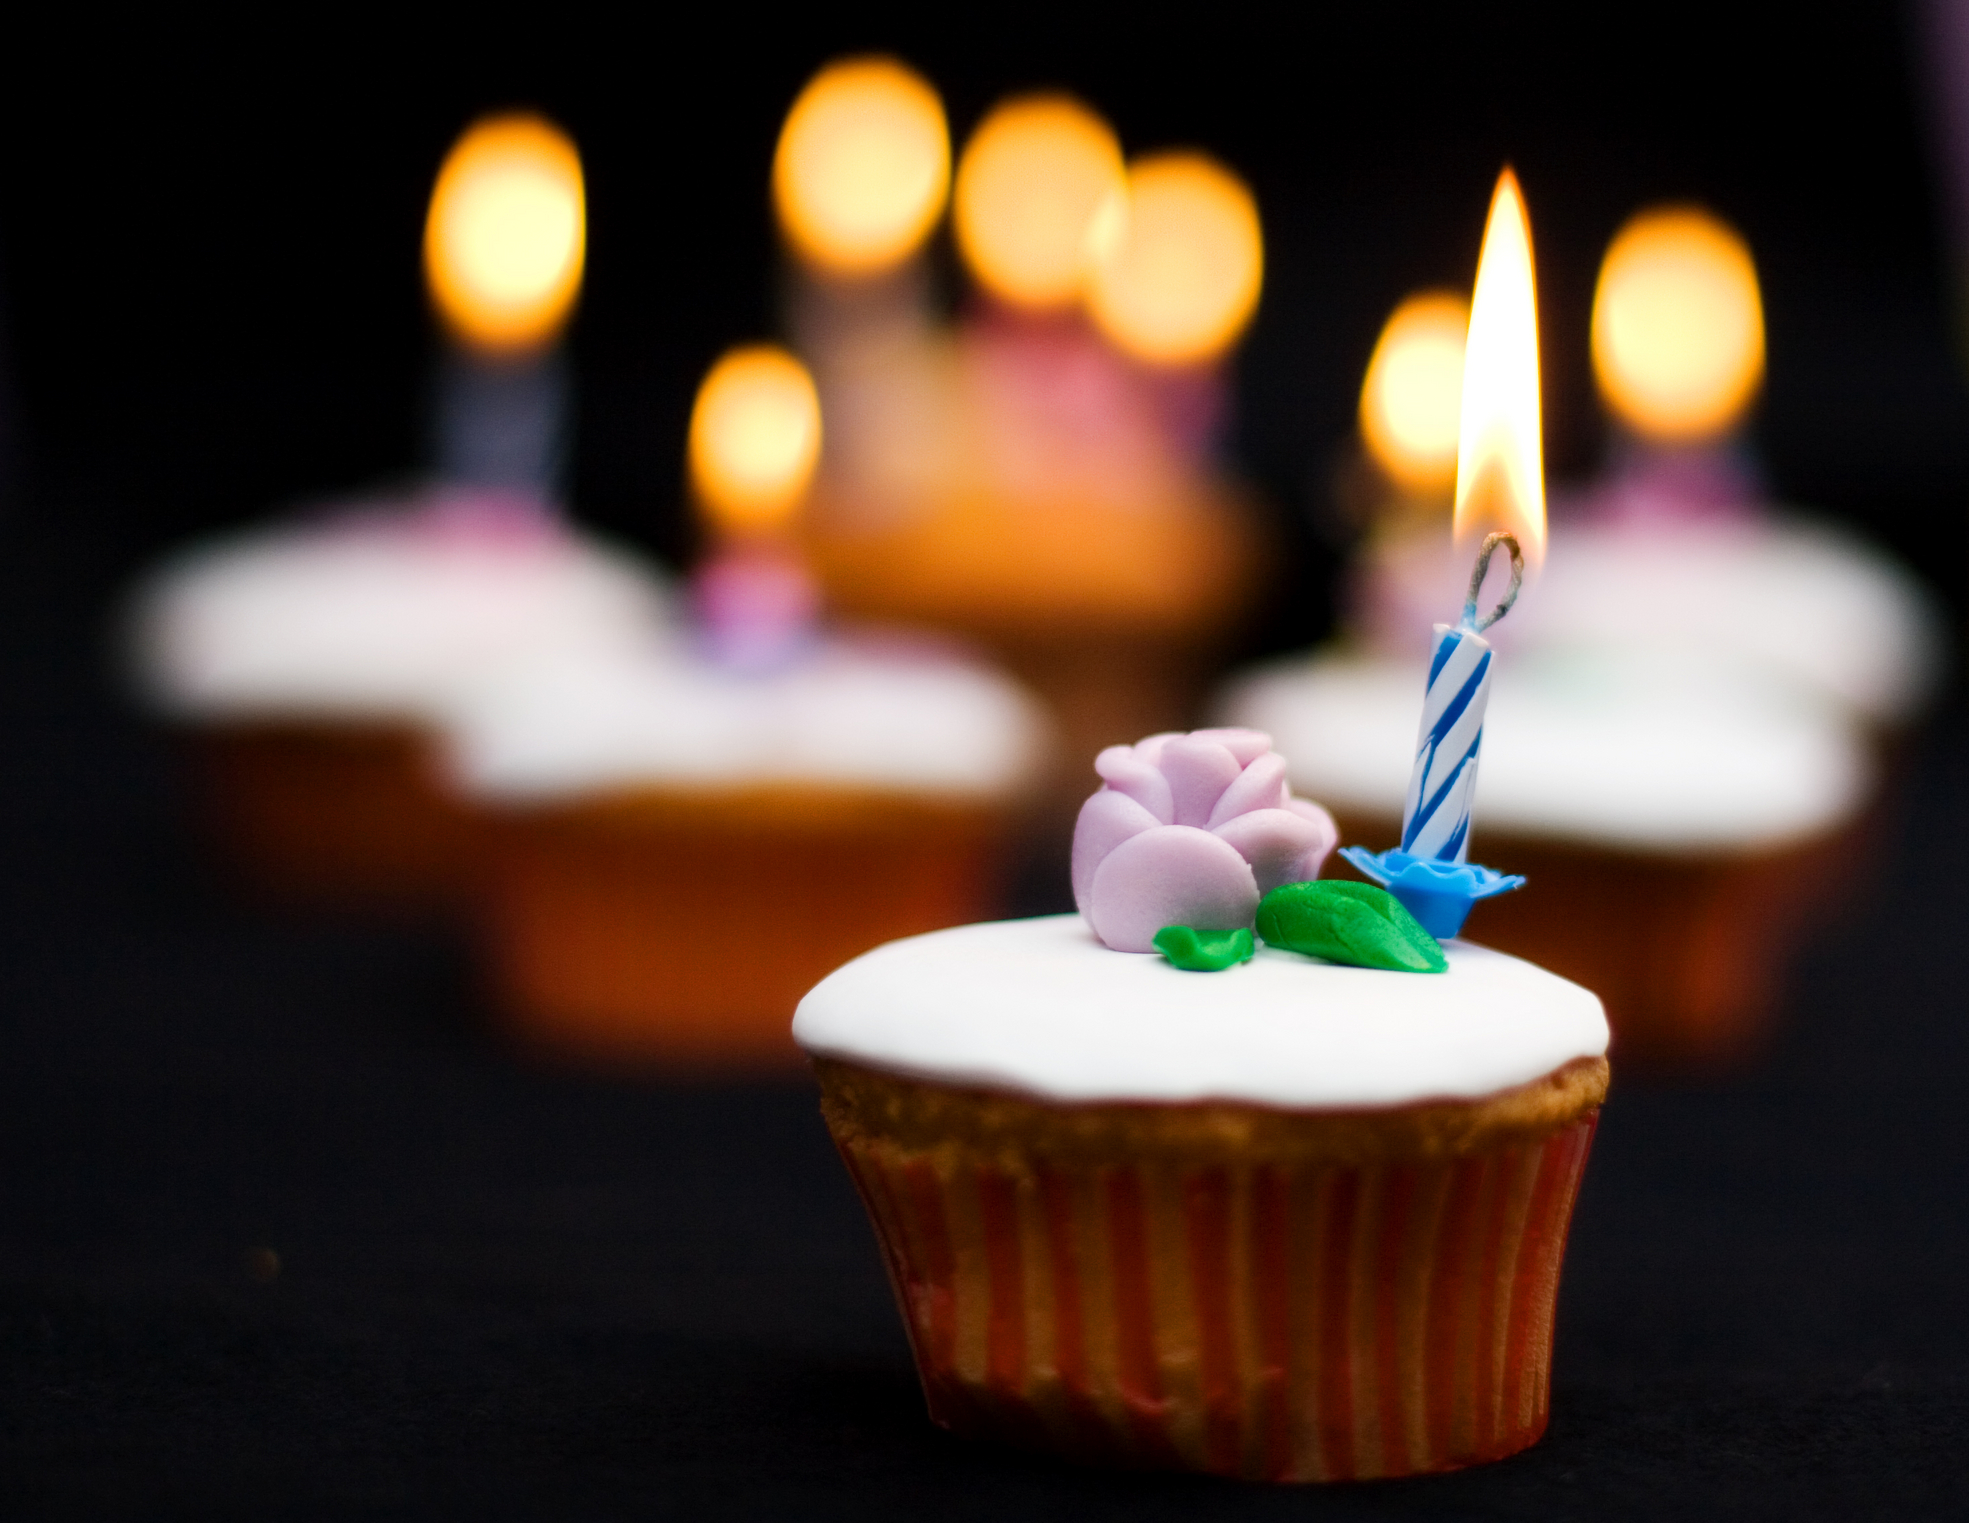 cupcakes with candles on